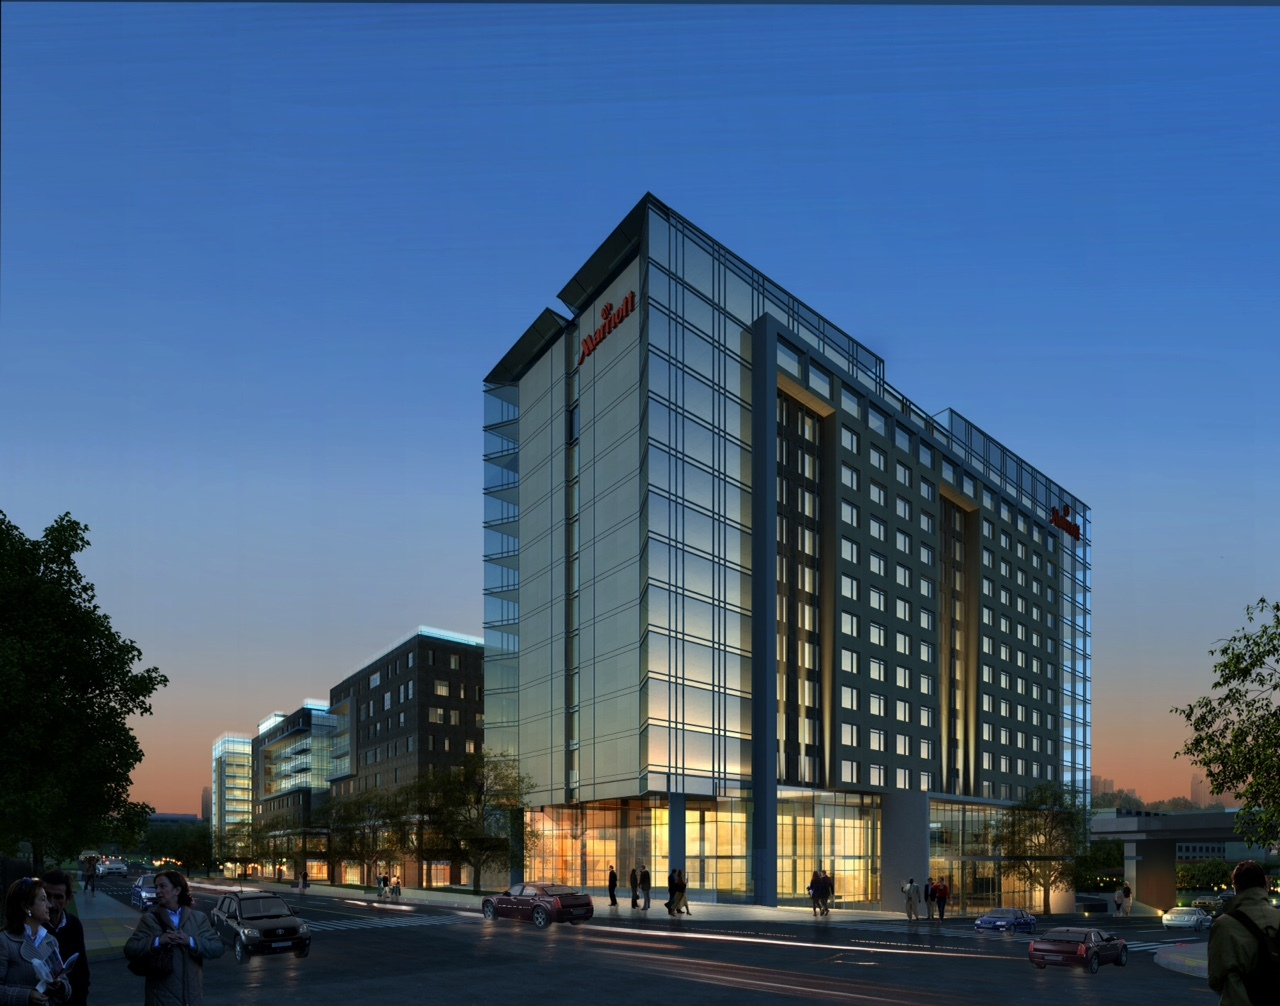 Construction Underway And On Schedule For The New Marriott Capitol District Hotel In Omaha Neb